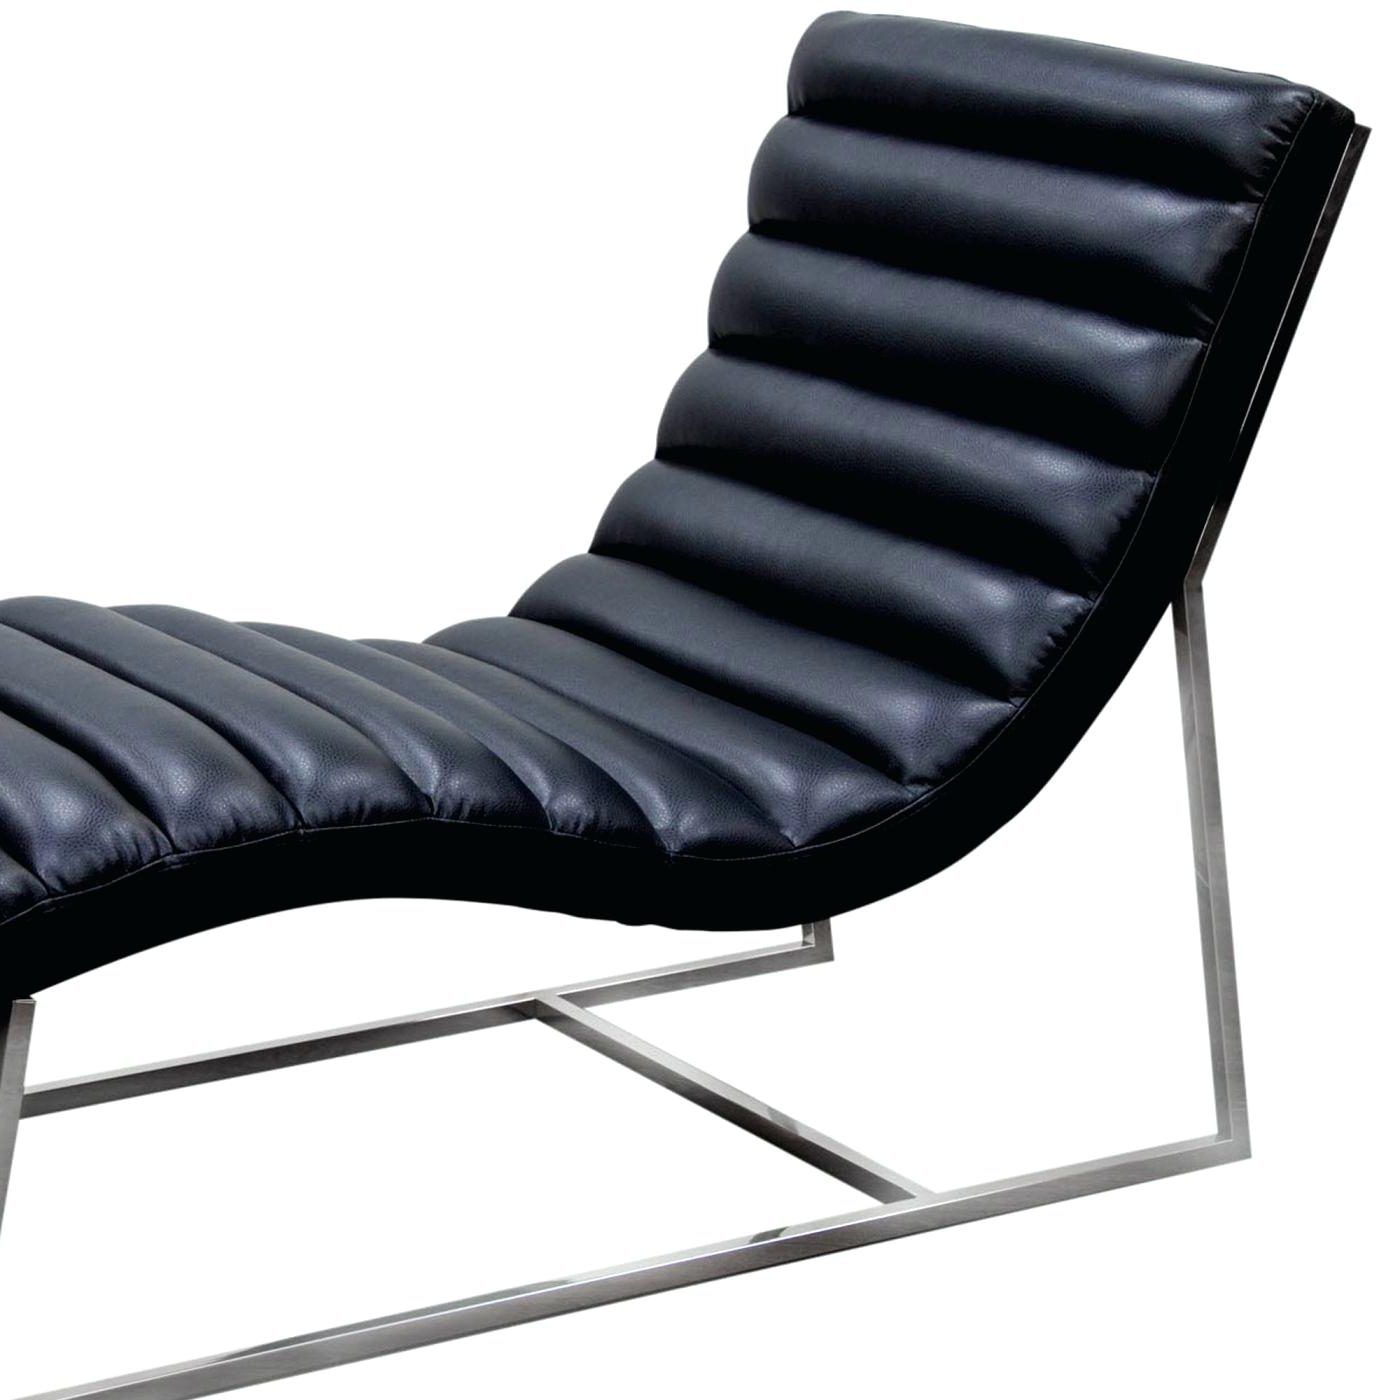 Damask Chaise Lounge Chairs Inside Well Known Black Chaise Iron Lounge Chairs Sofa Outdoor – Nikeaf (View 12 of 15)